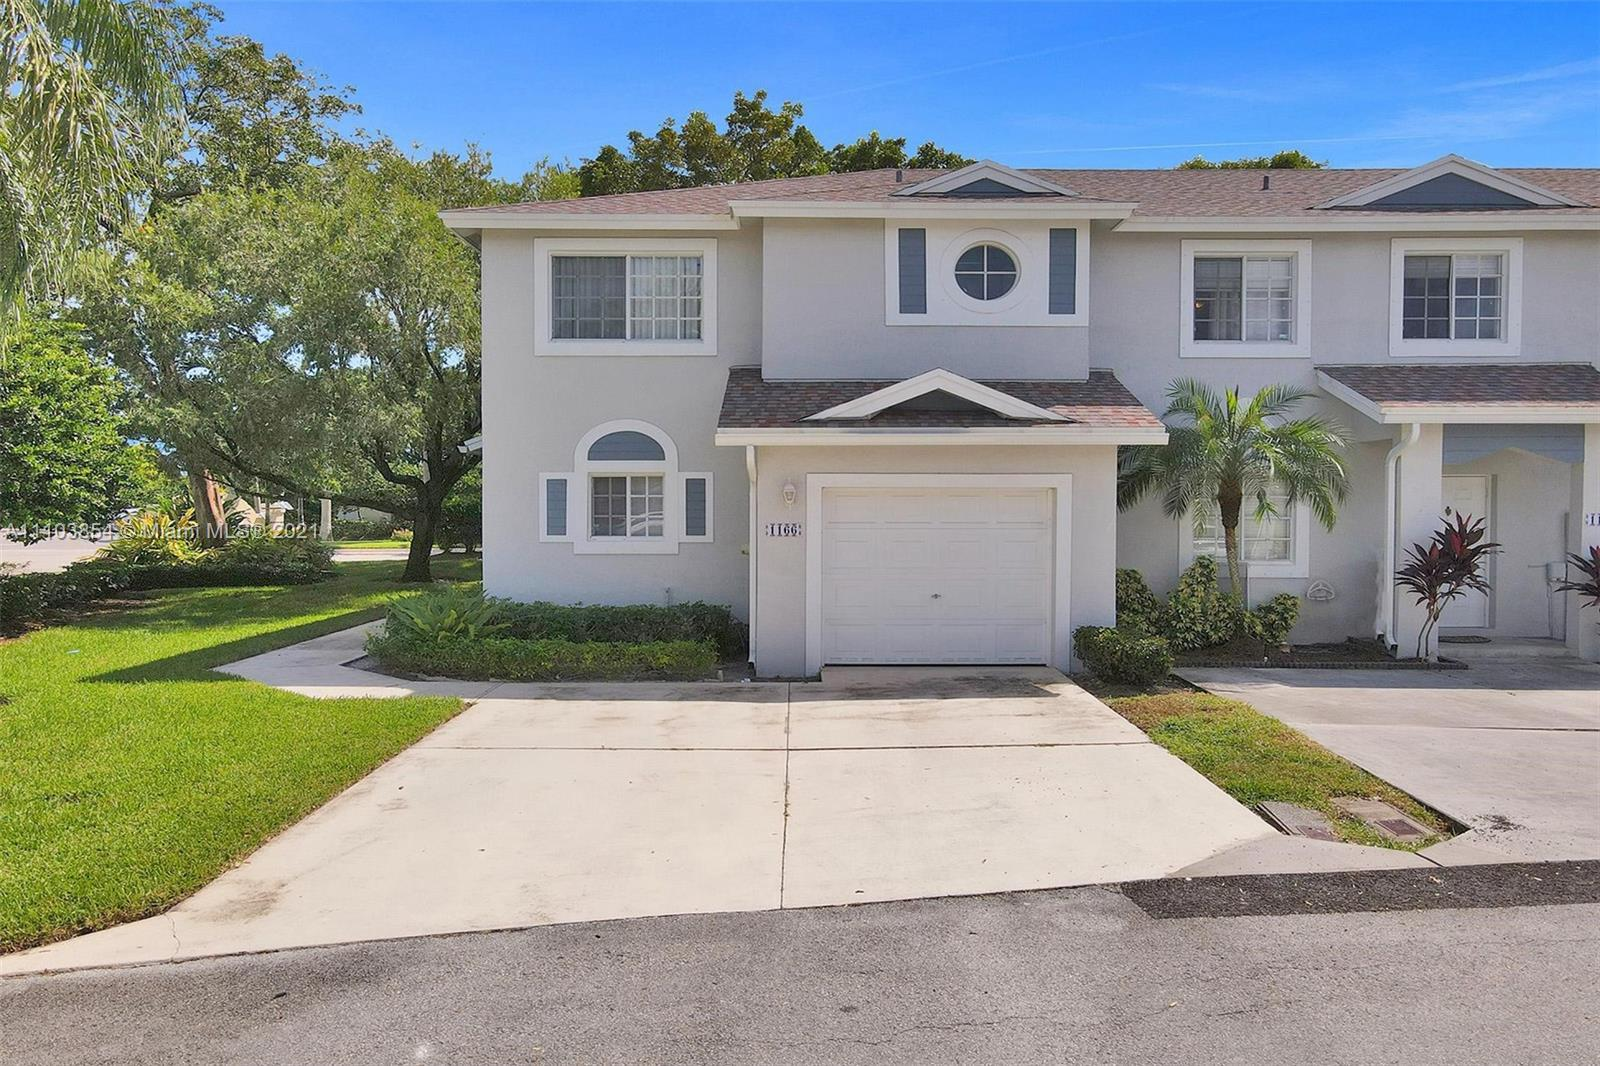 Corner unit 3 BD   2.5 BA in the city of Deerfield Beach. This home will not last! Stop on by and pr